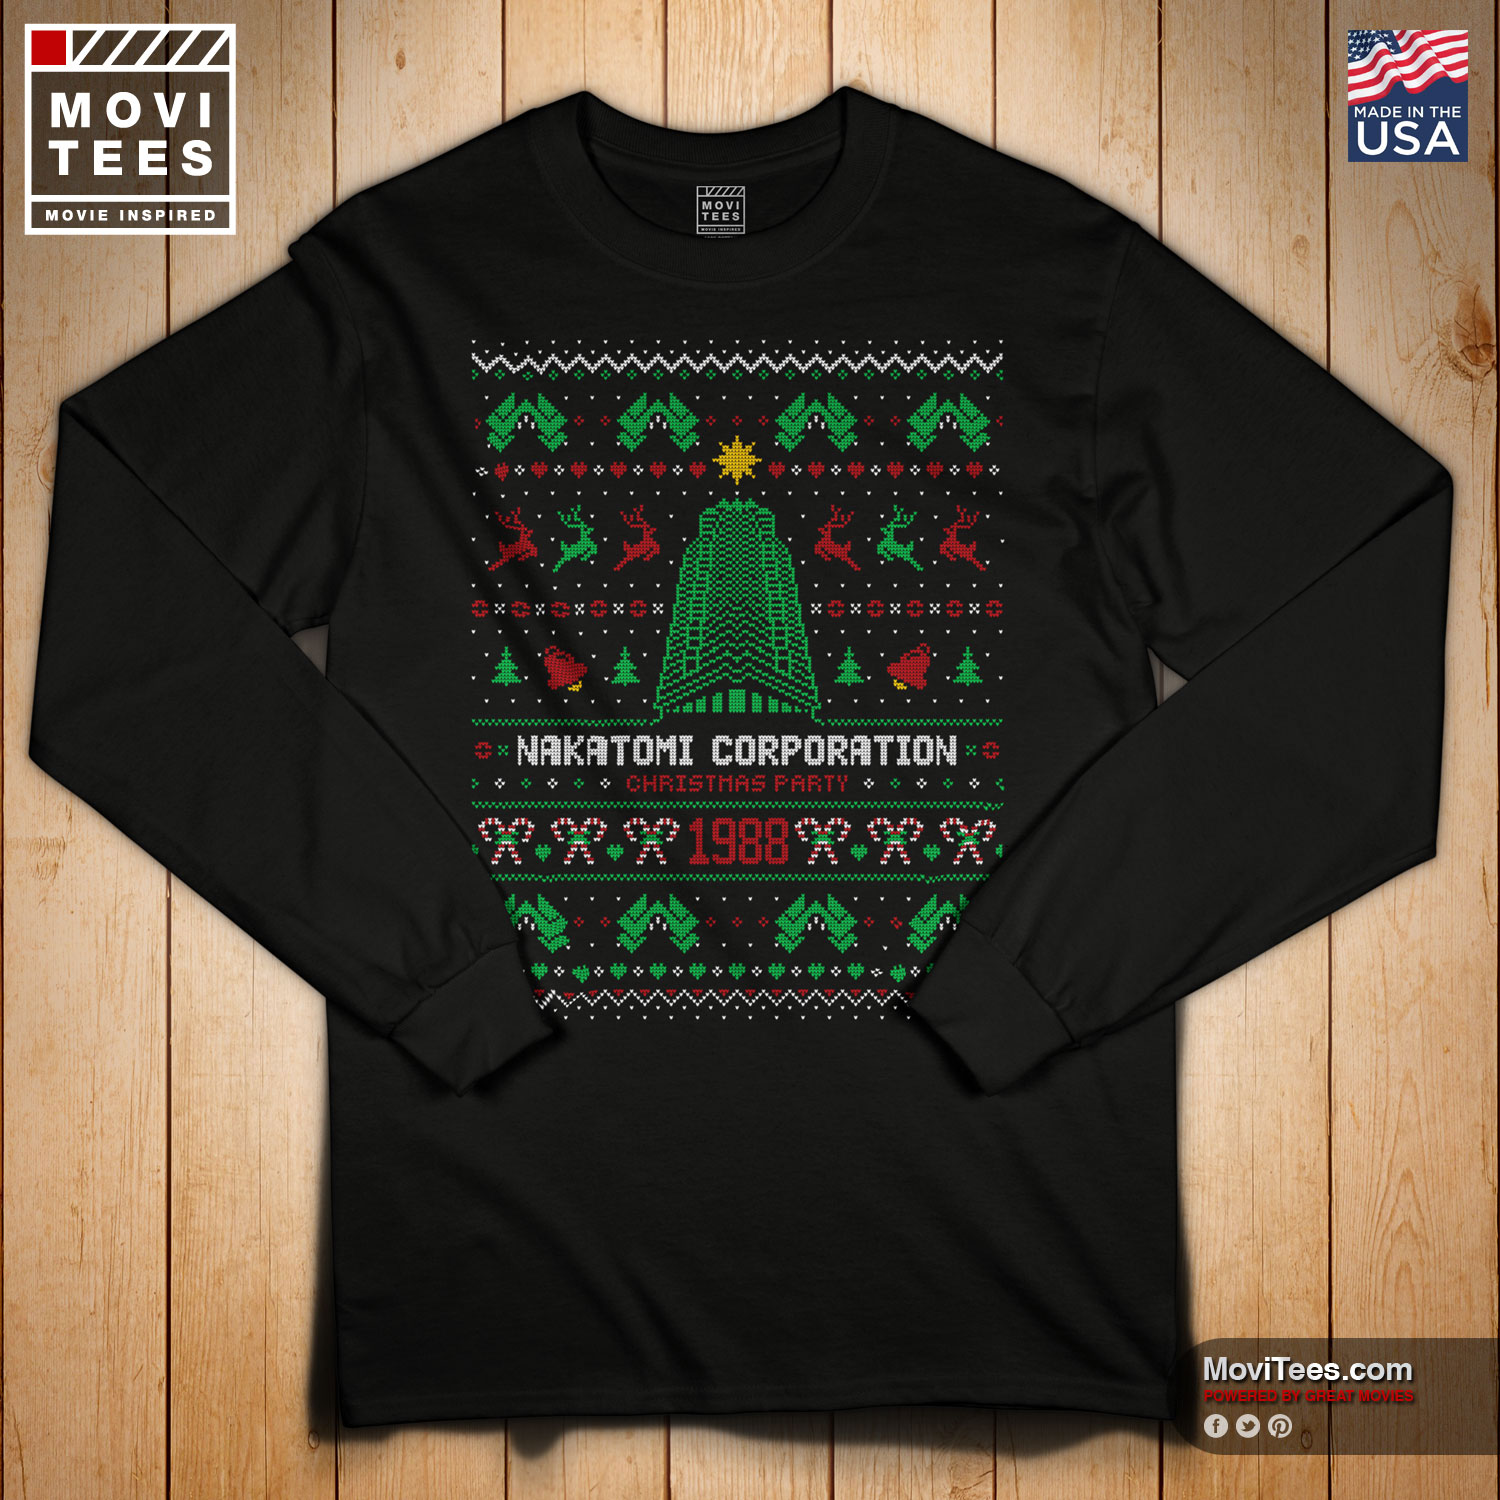 Nakatomi Corporation 1988 Christmas Party Ugly Sweater T-Shirt